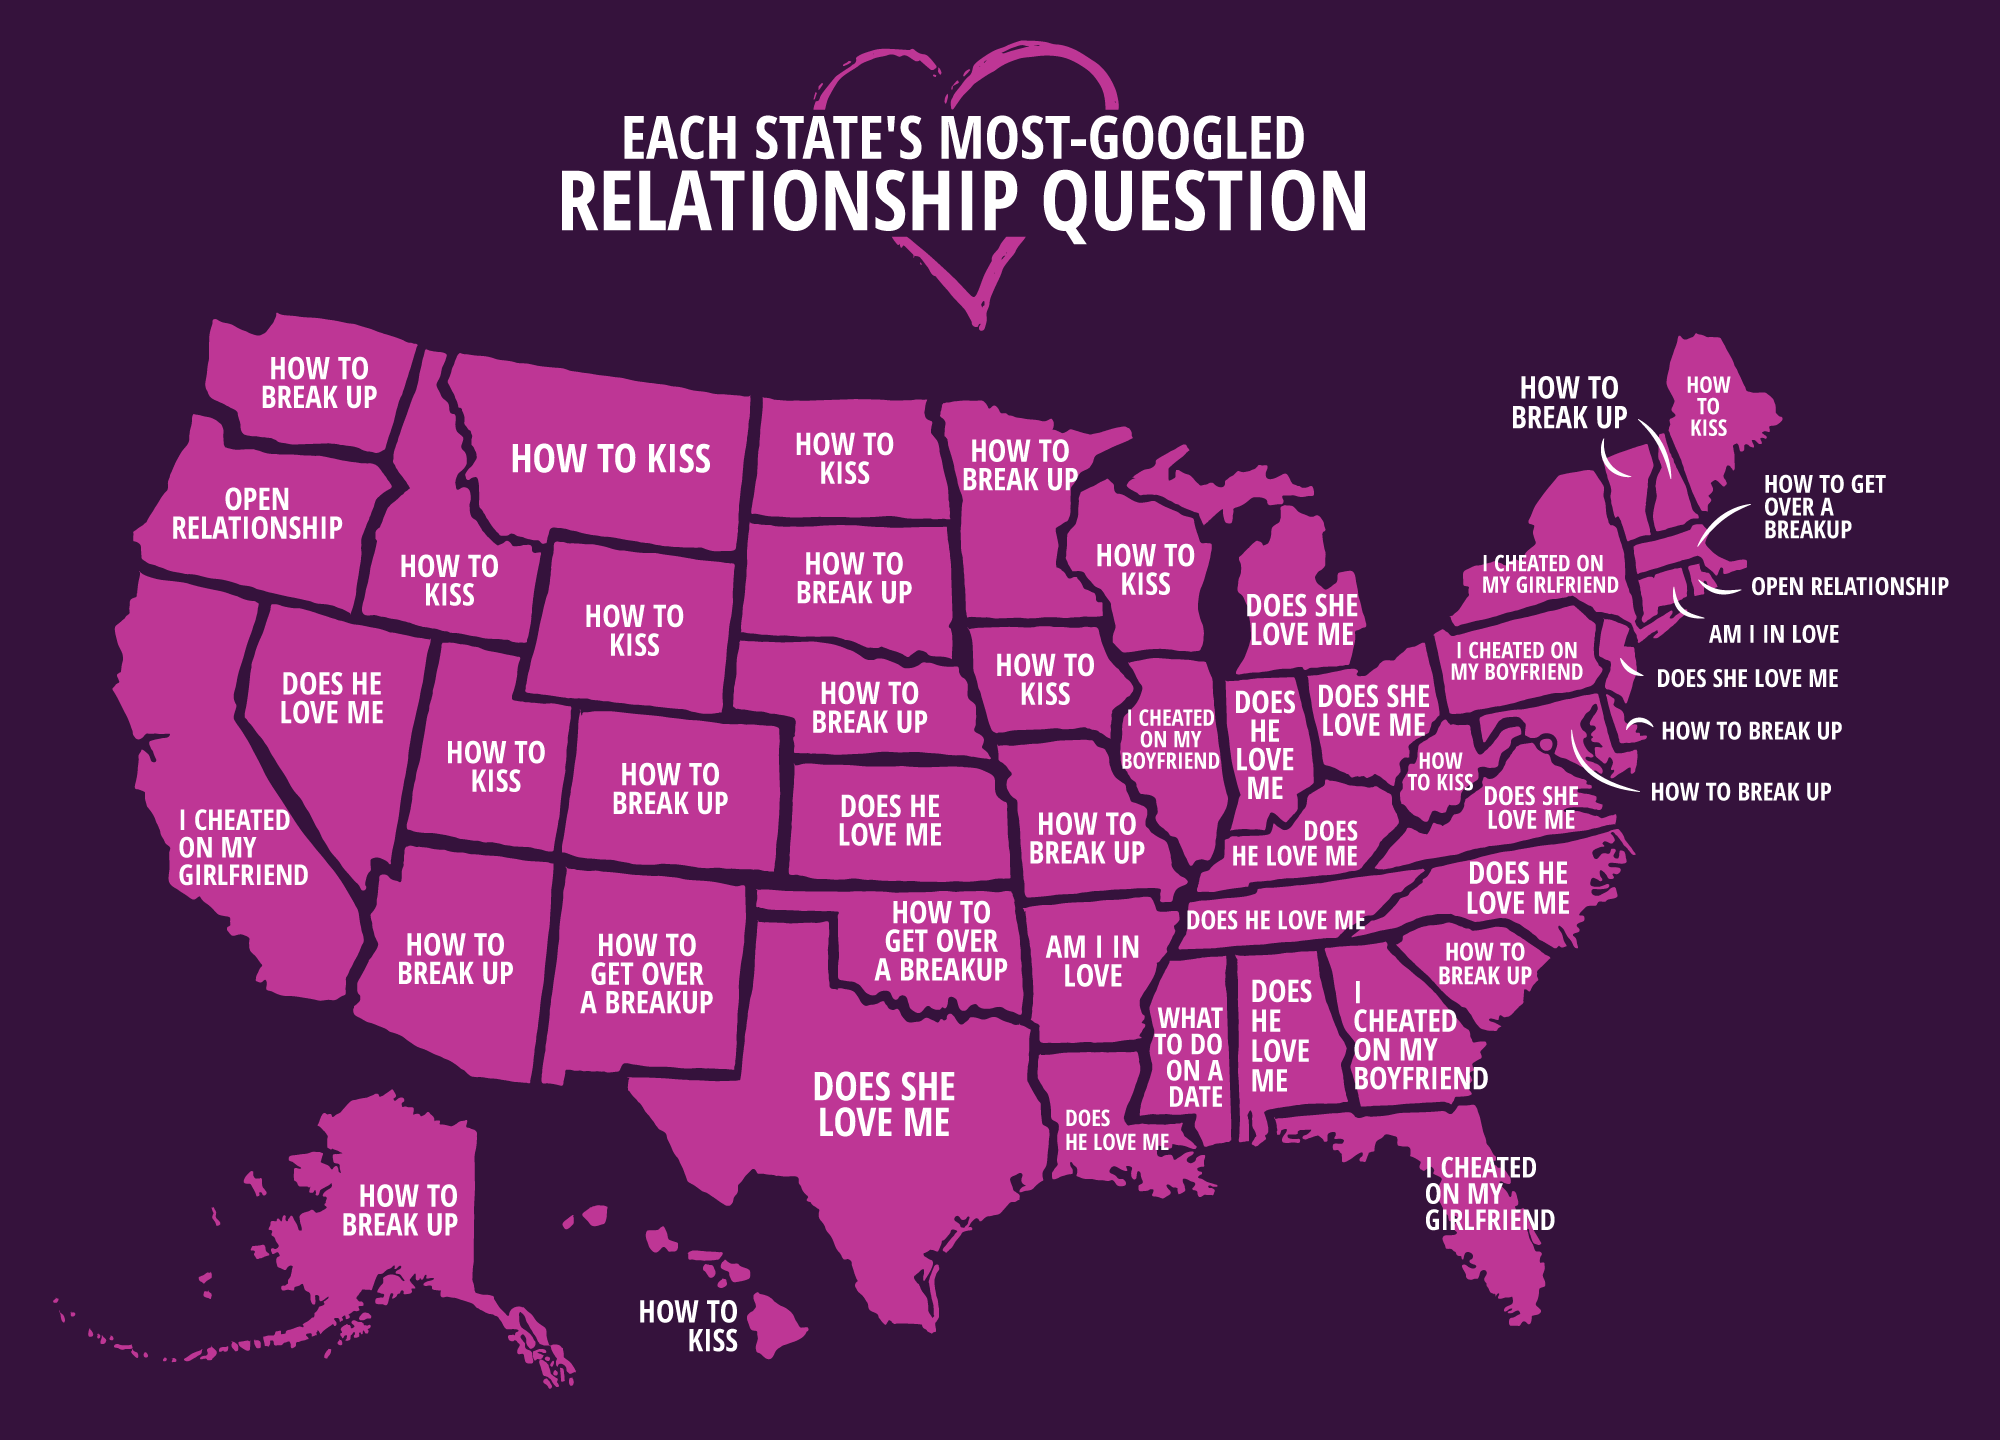 Most-Googled-Relationship-Questions-Map_1549986815872.png